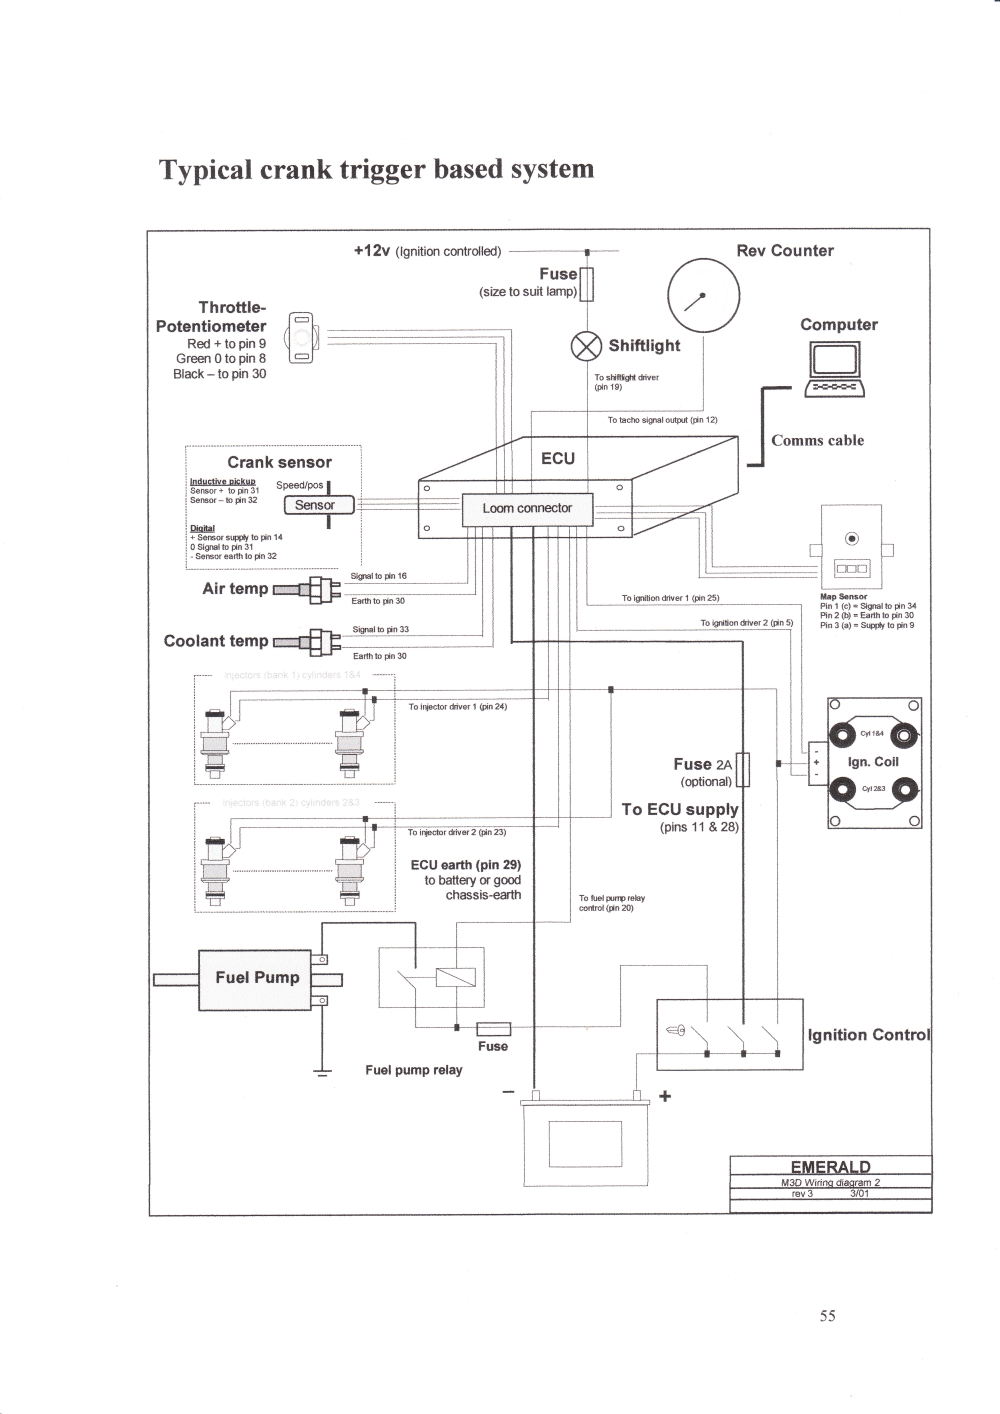 201203022025639669ECU wiring emerald k6 wiring diagram electrical wiring diagrams \u2022 wiring Residential Electrical Wiring Diagrams at gsmportal.co